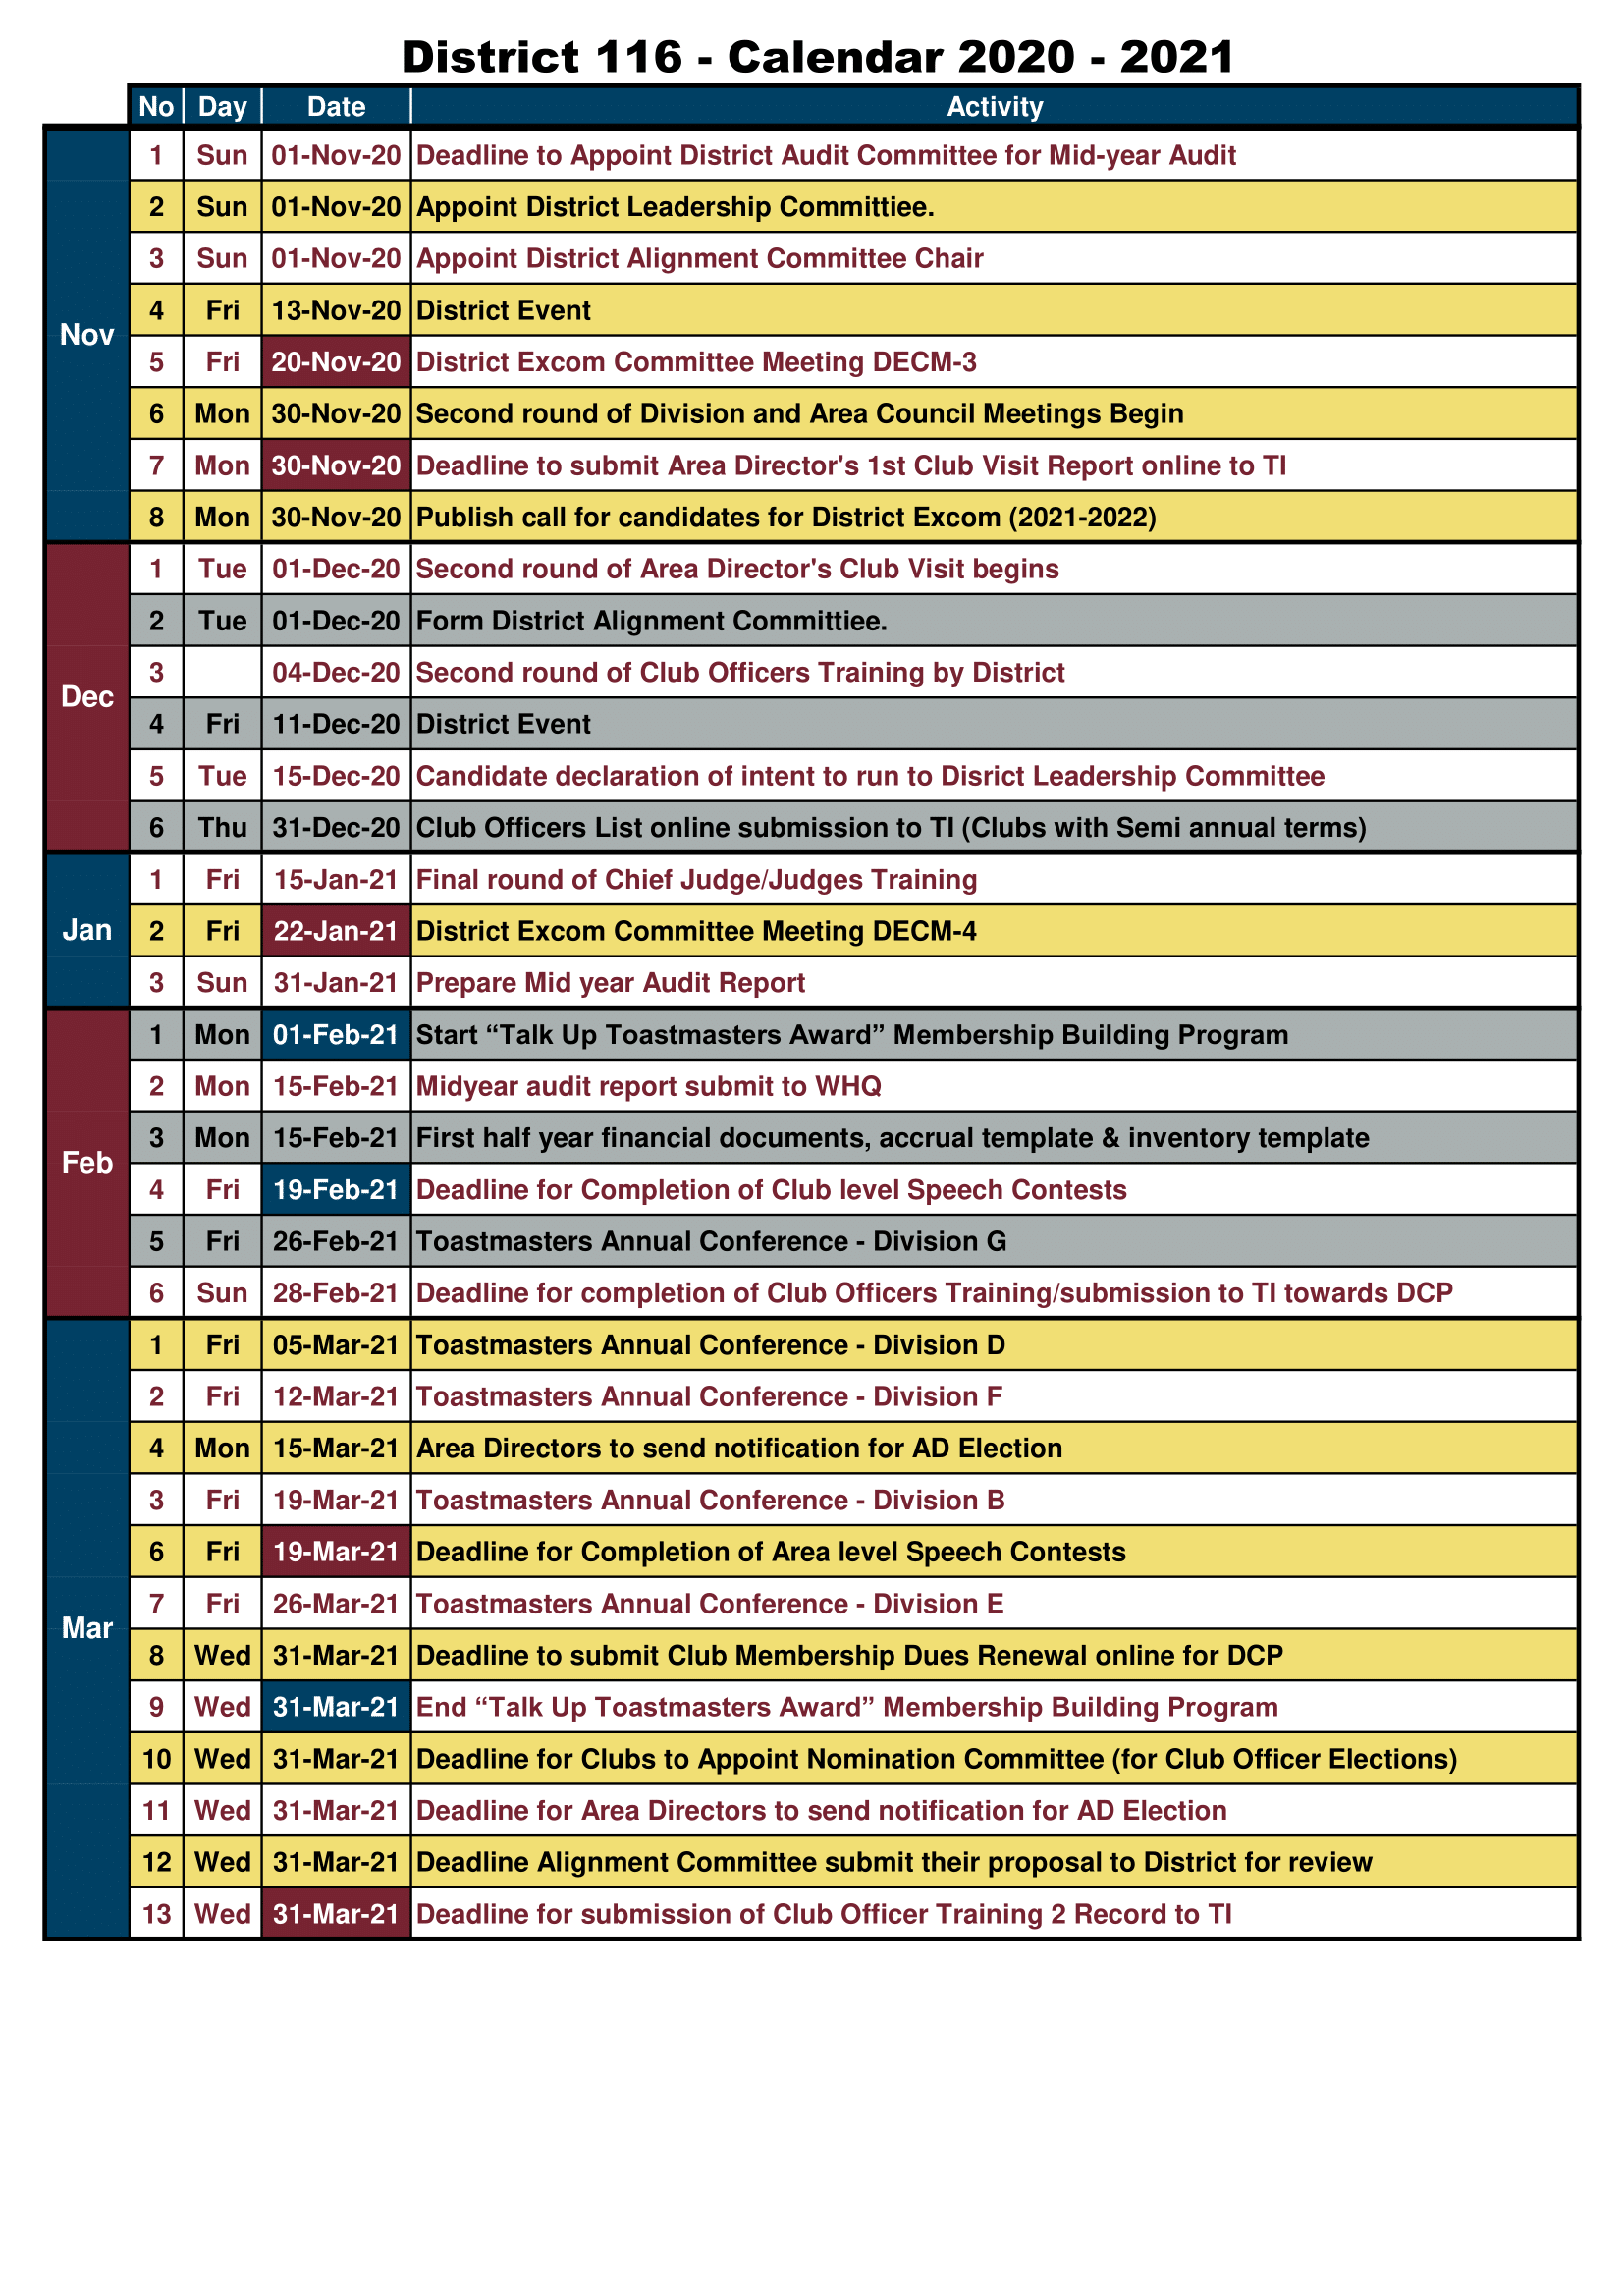 Toastmasters District 116 Calendar 2020-2021